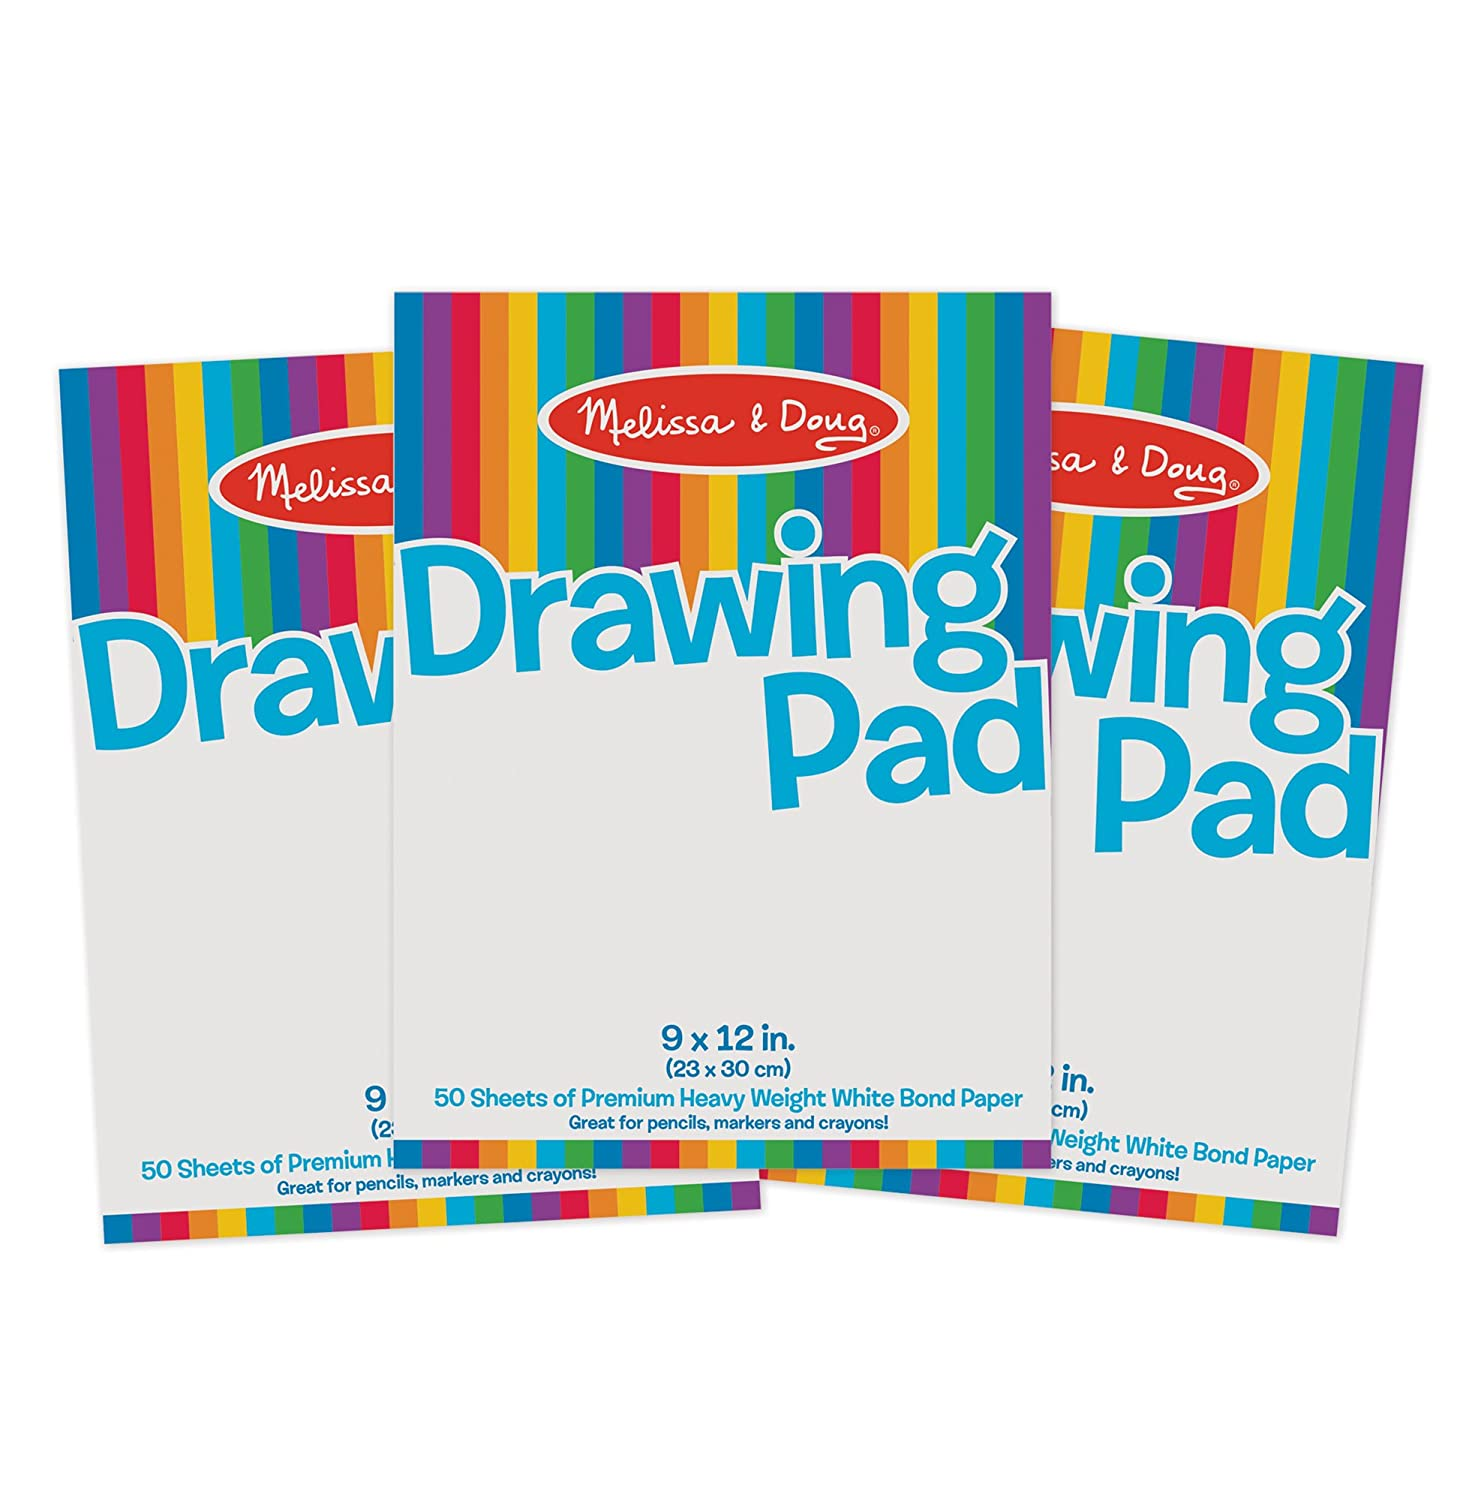 Melissa & Doug Drawing Paper Pad (9 x 12 inches) - 50 Sheets, 3-Pack Melissa and Doug 93165